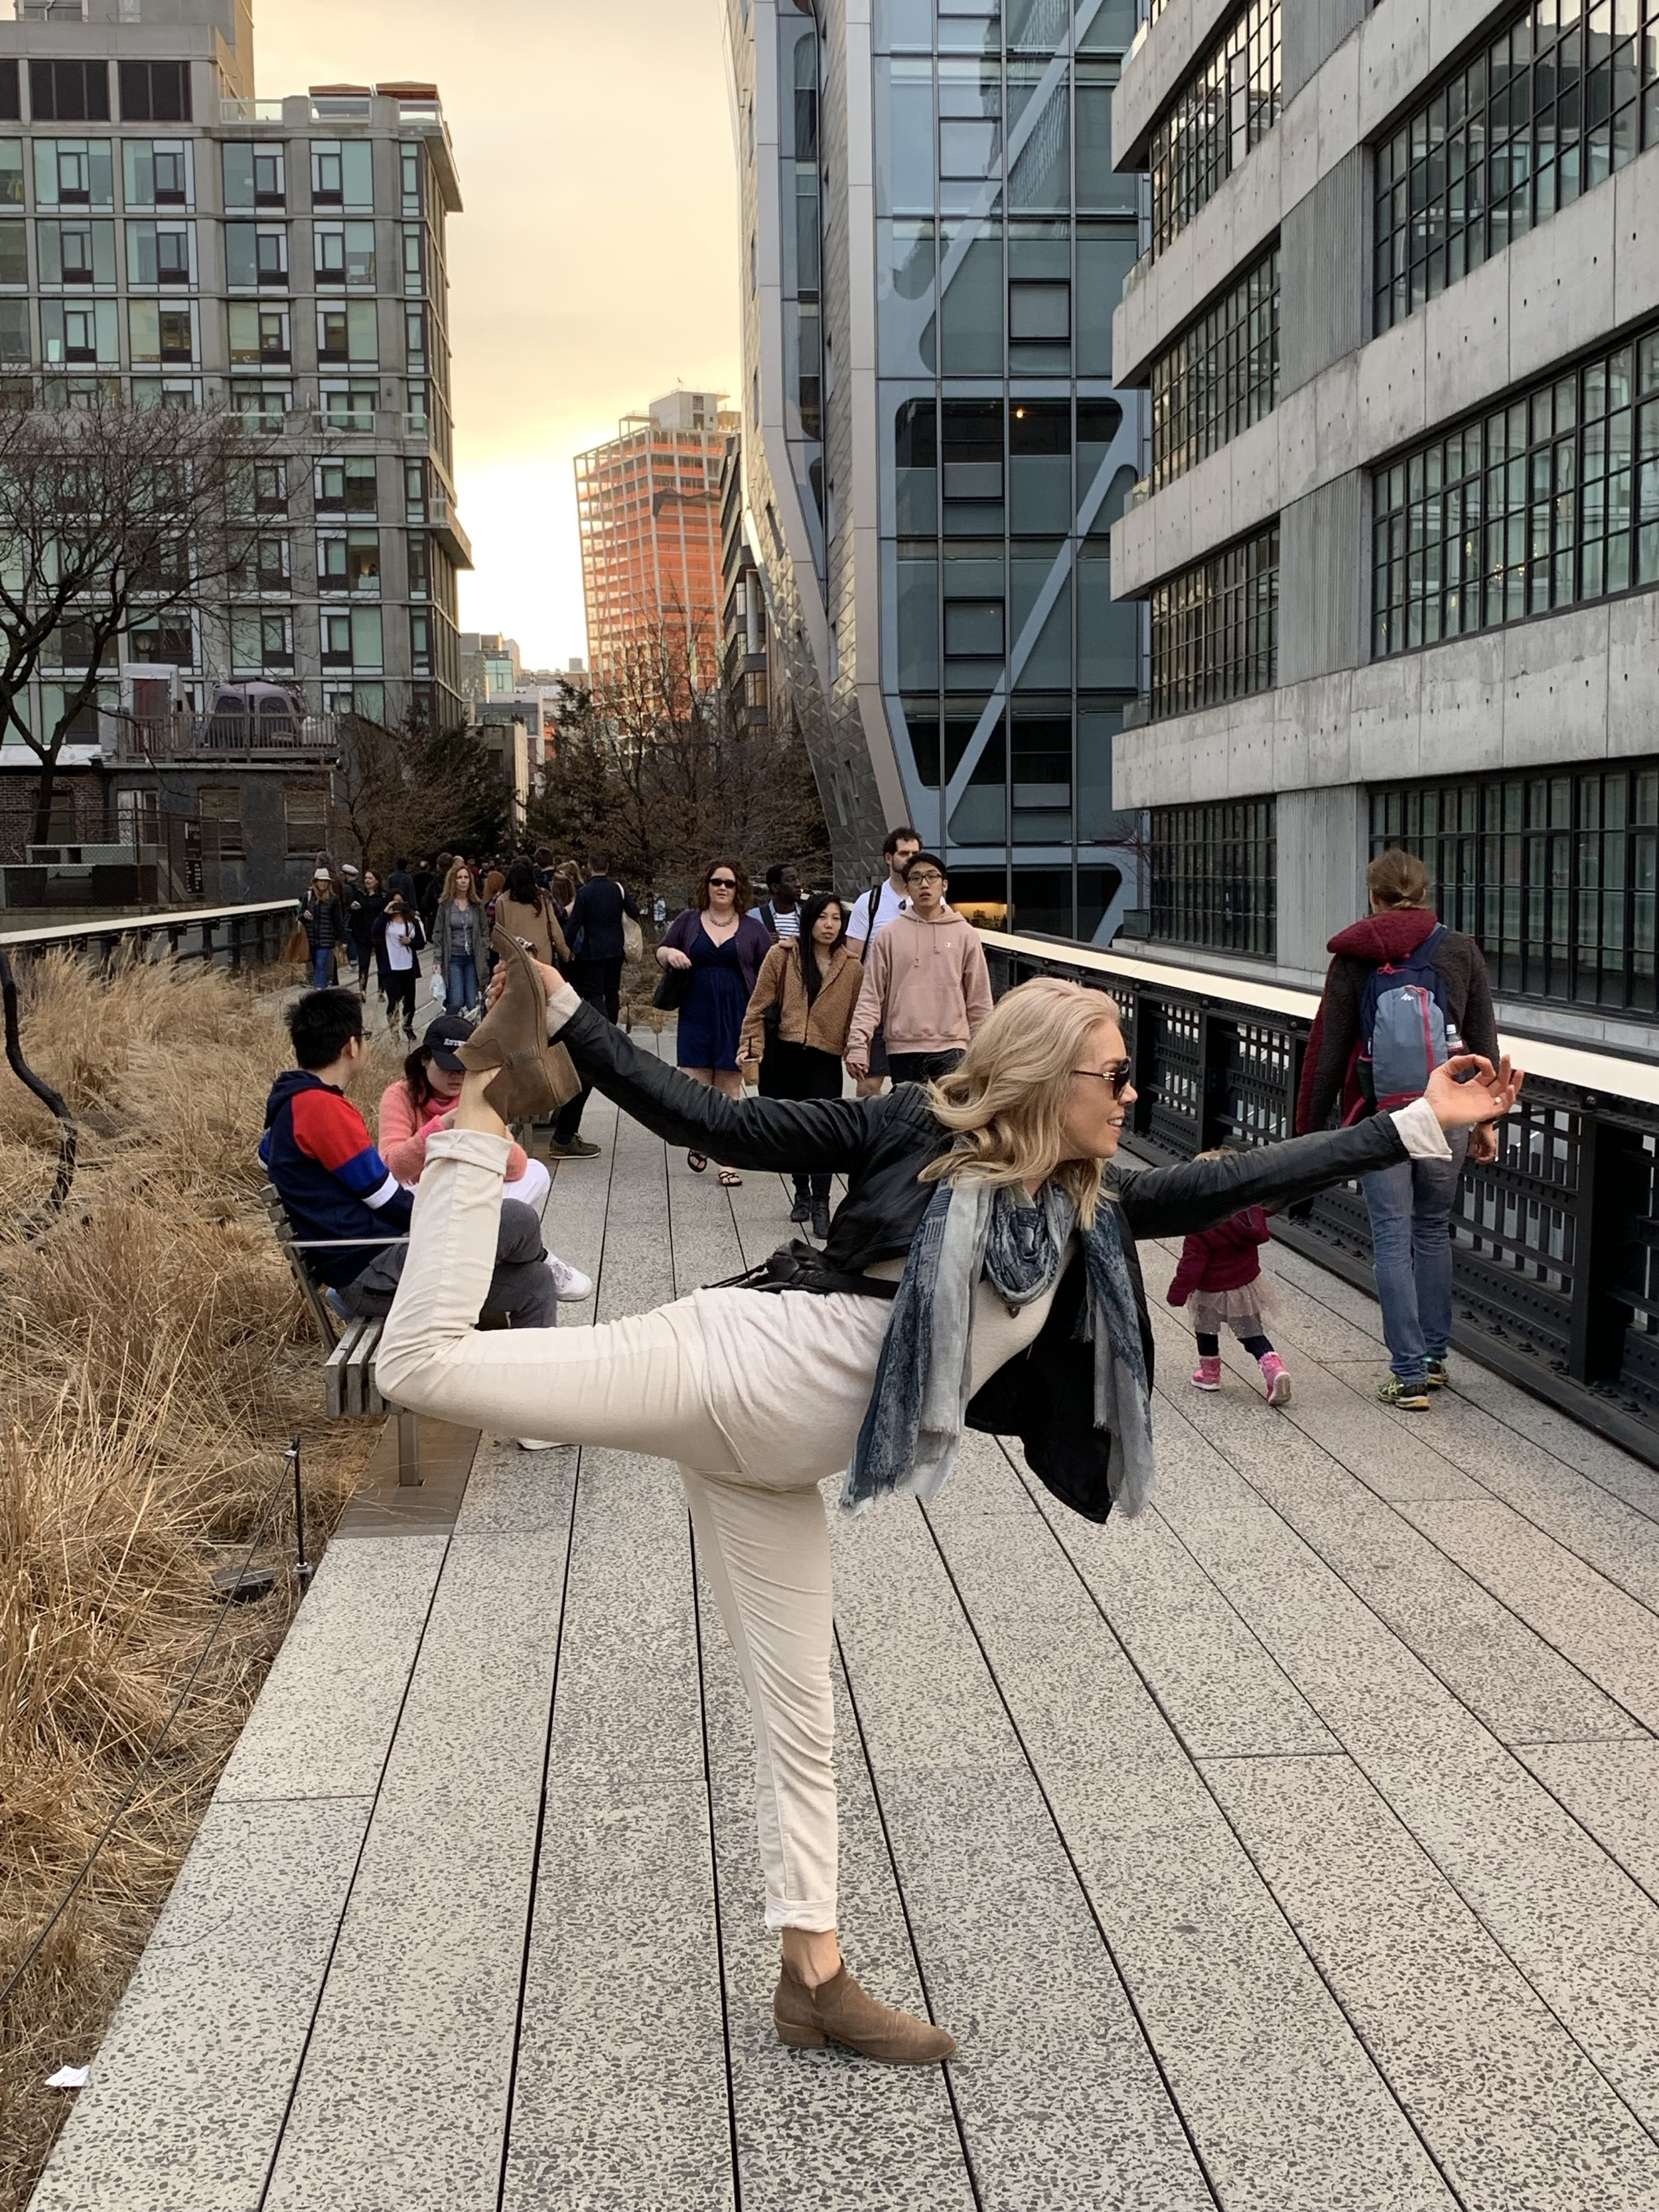 Capturing joy in my favorite yoga pose, Natarajasana, among the frenetic pace of the High Line in NYC opening weekend of Hudson Yards.